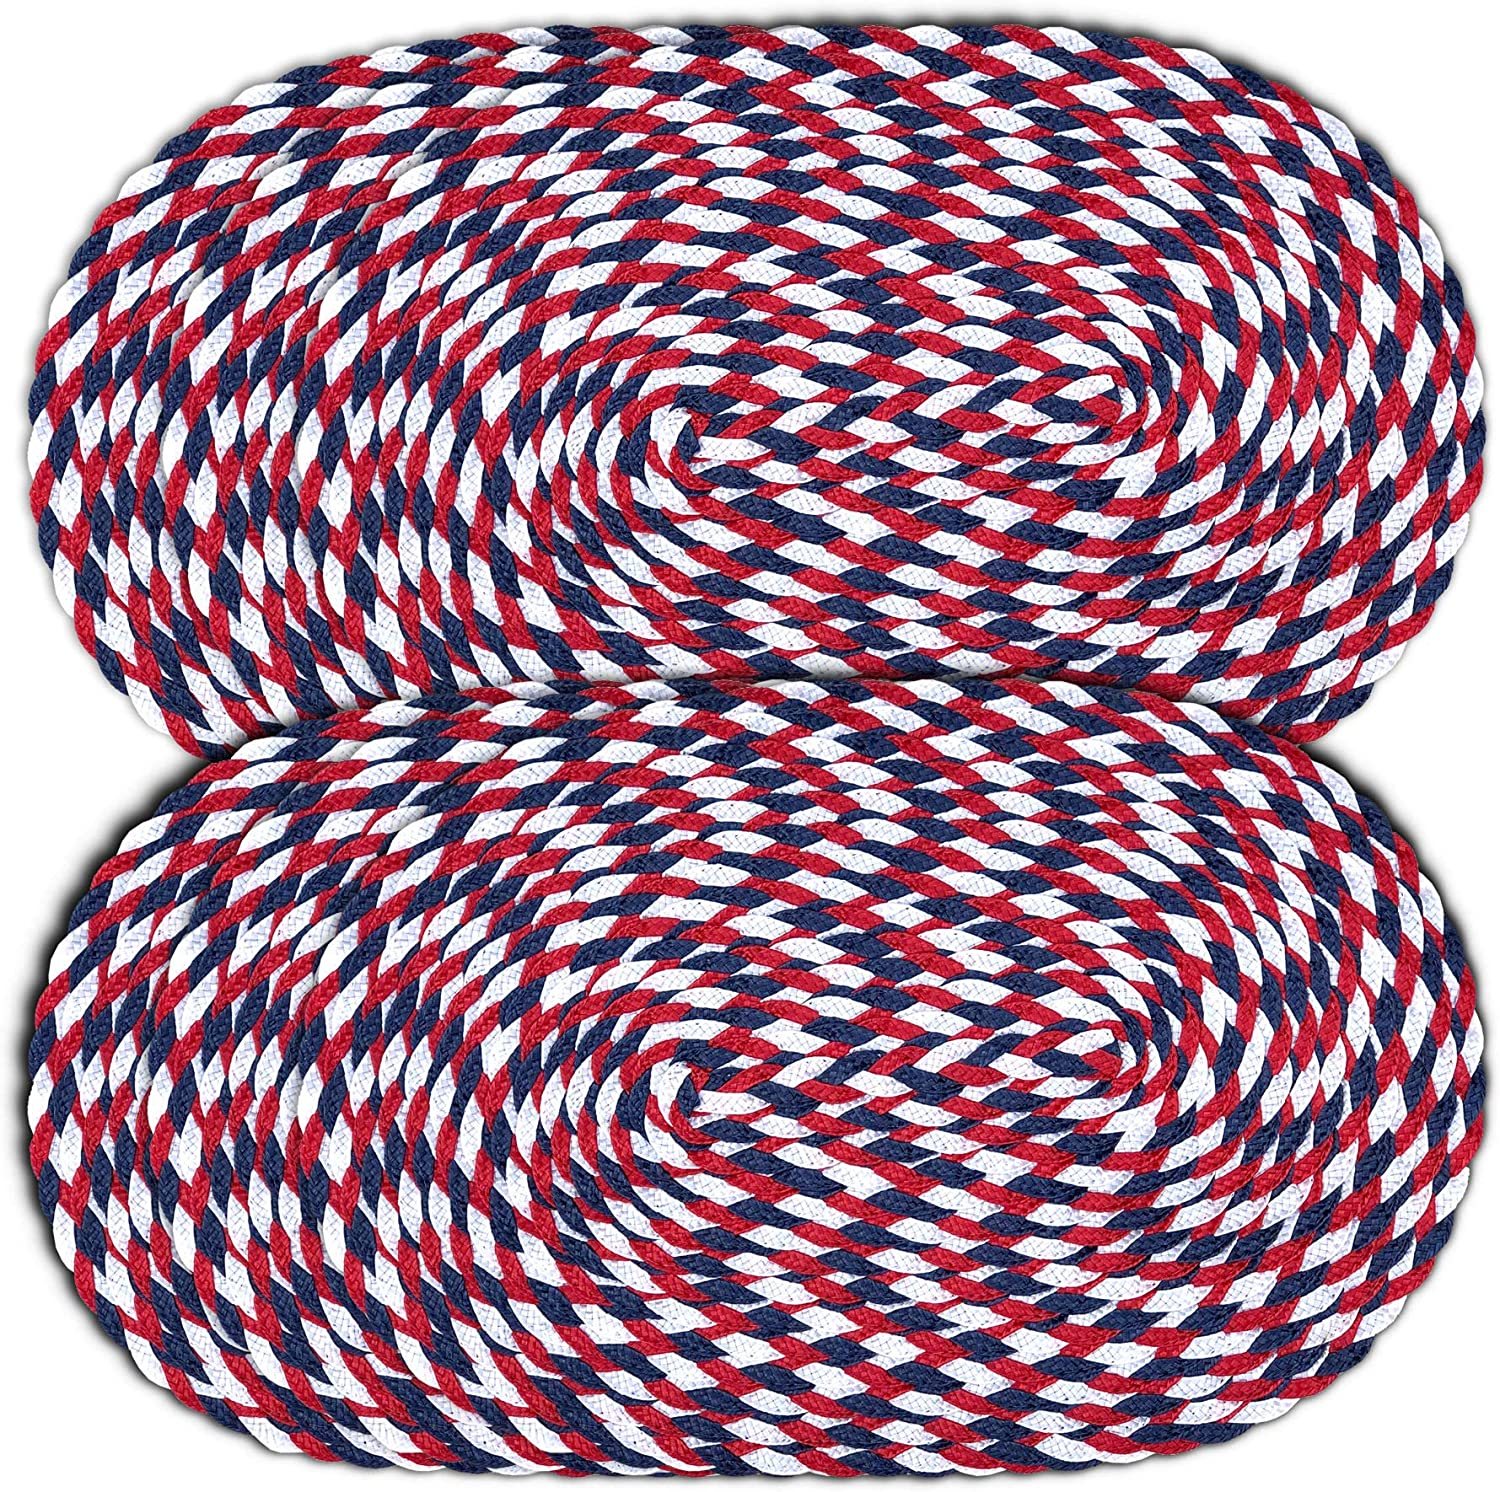 CAIT CHAPMAN HOME COLLECTION Americana July 4th 12x18-Oval Braided Woven Polypropylene Plastic Placemats, Set of 6